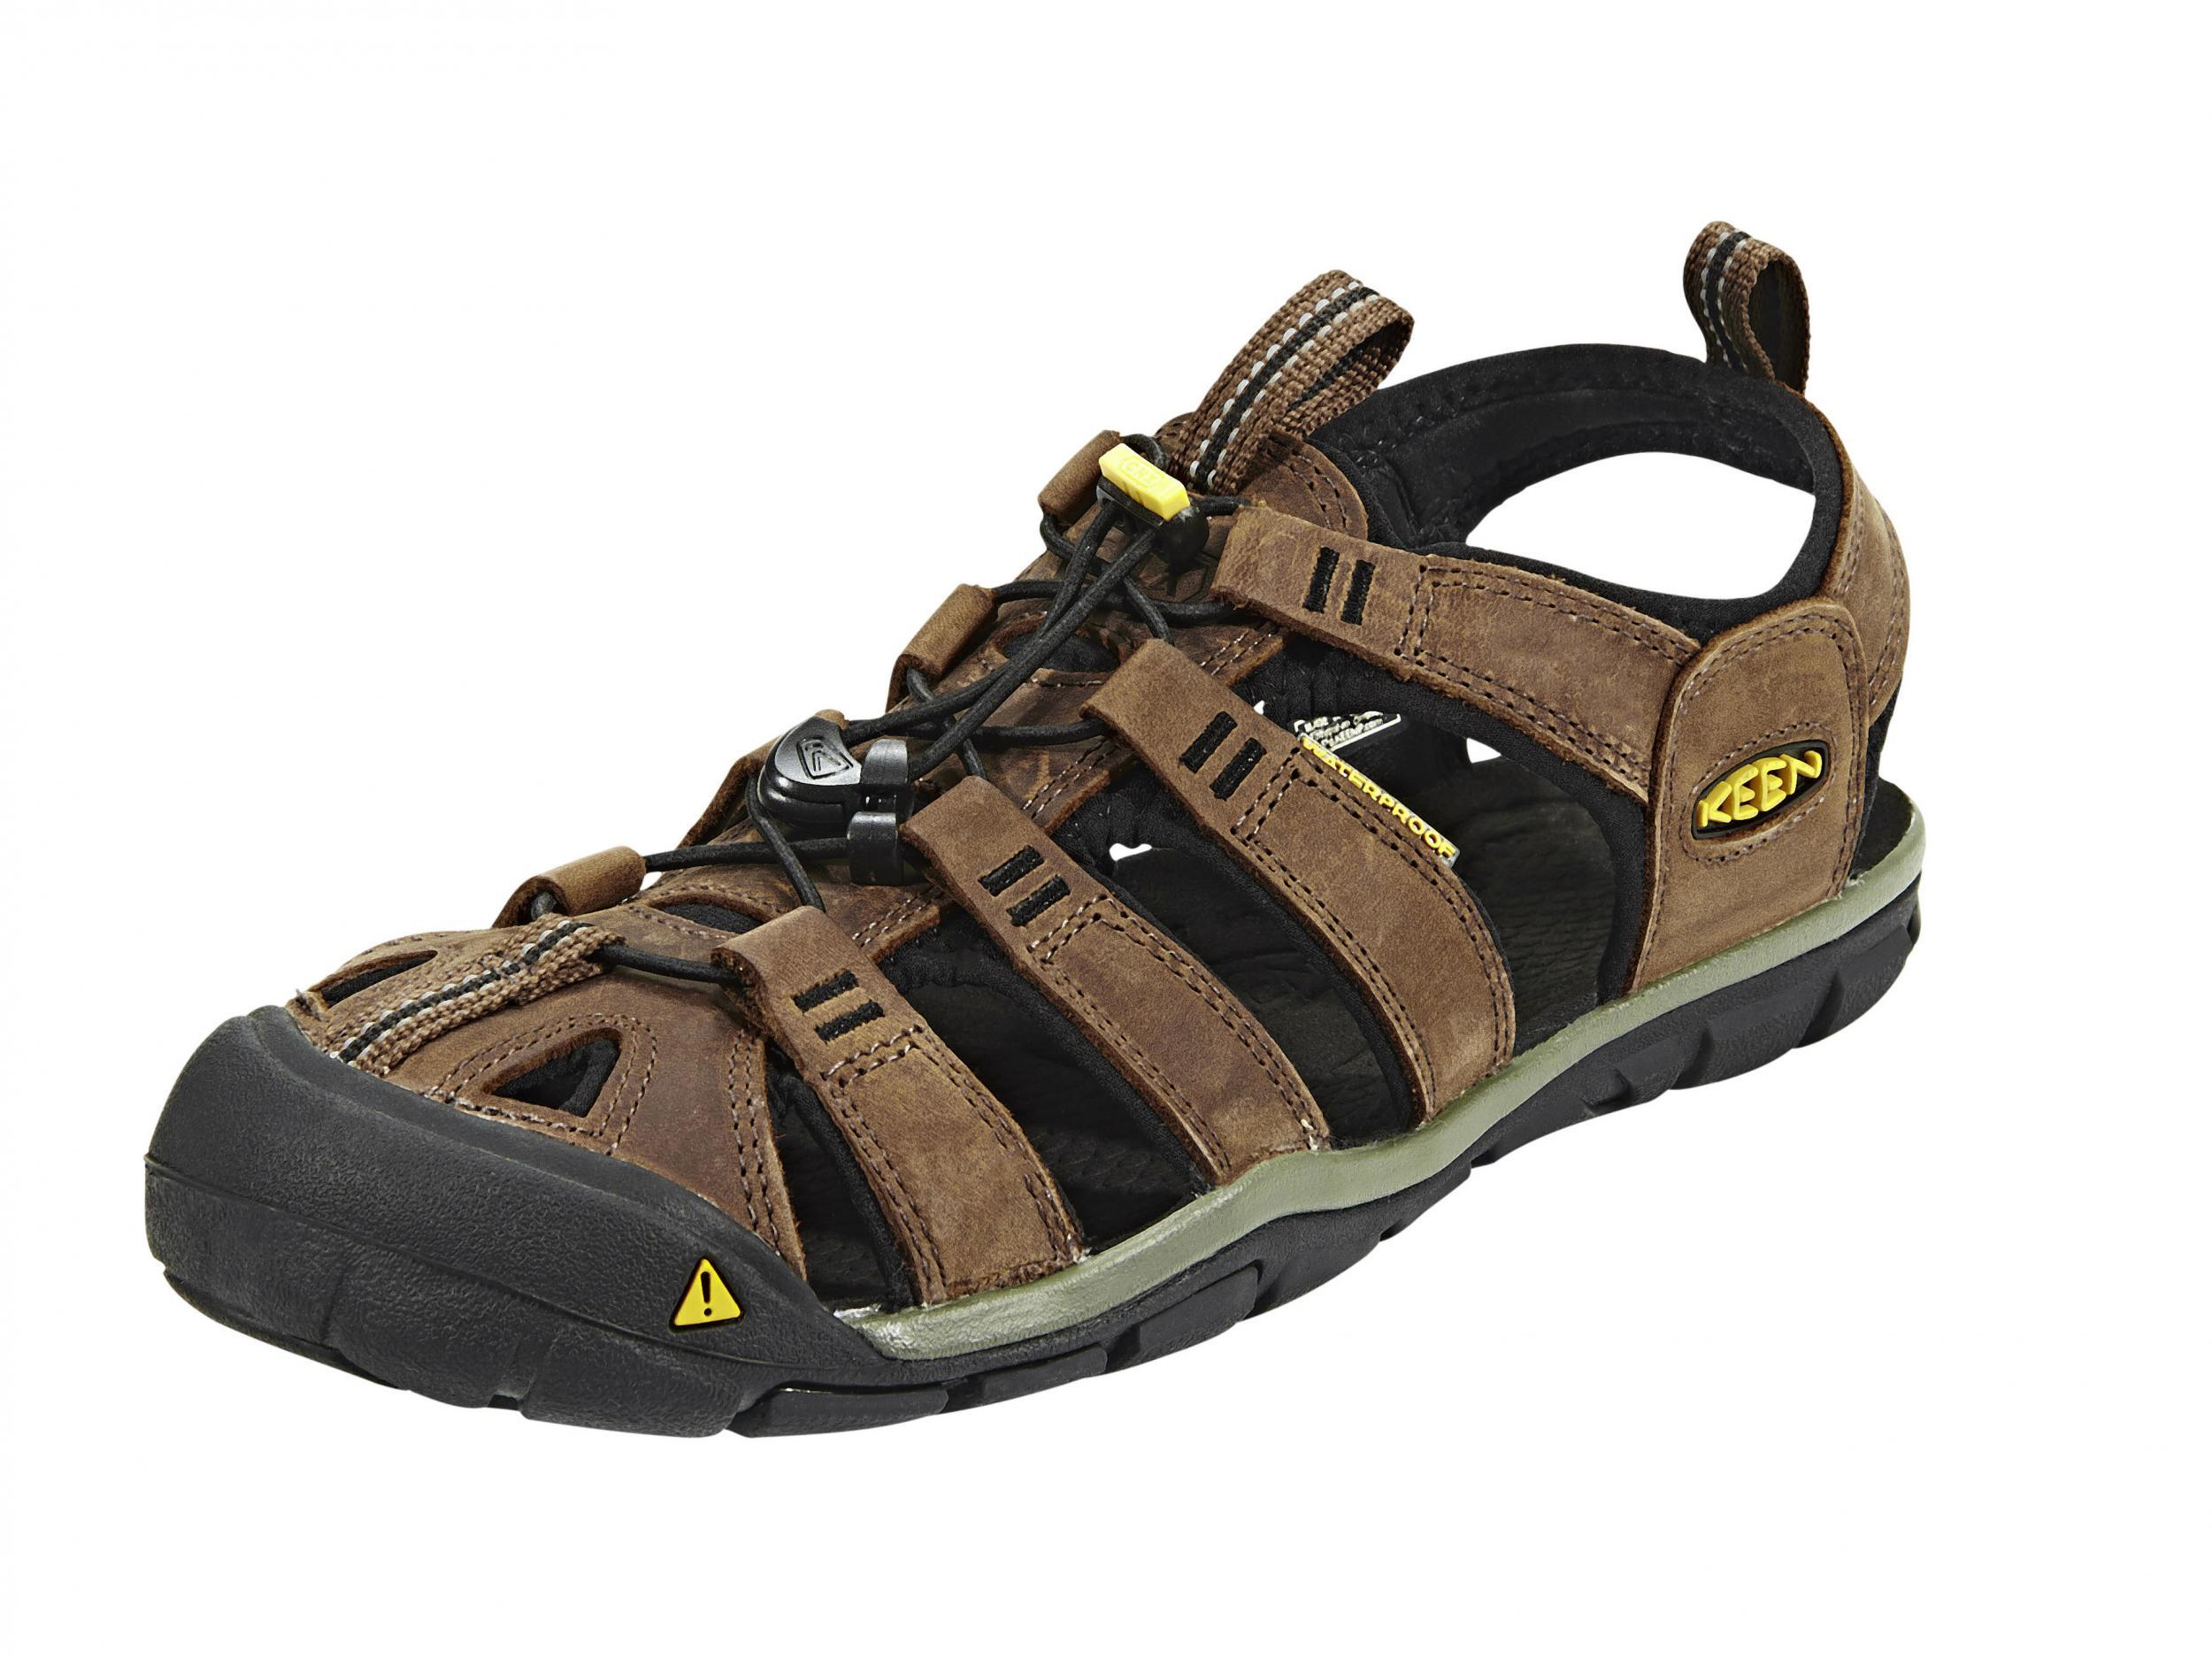 Sandals That Are BreathableComfortable Men's And Best Walking BxoQCderW